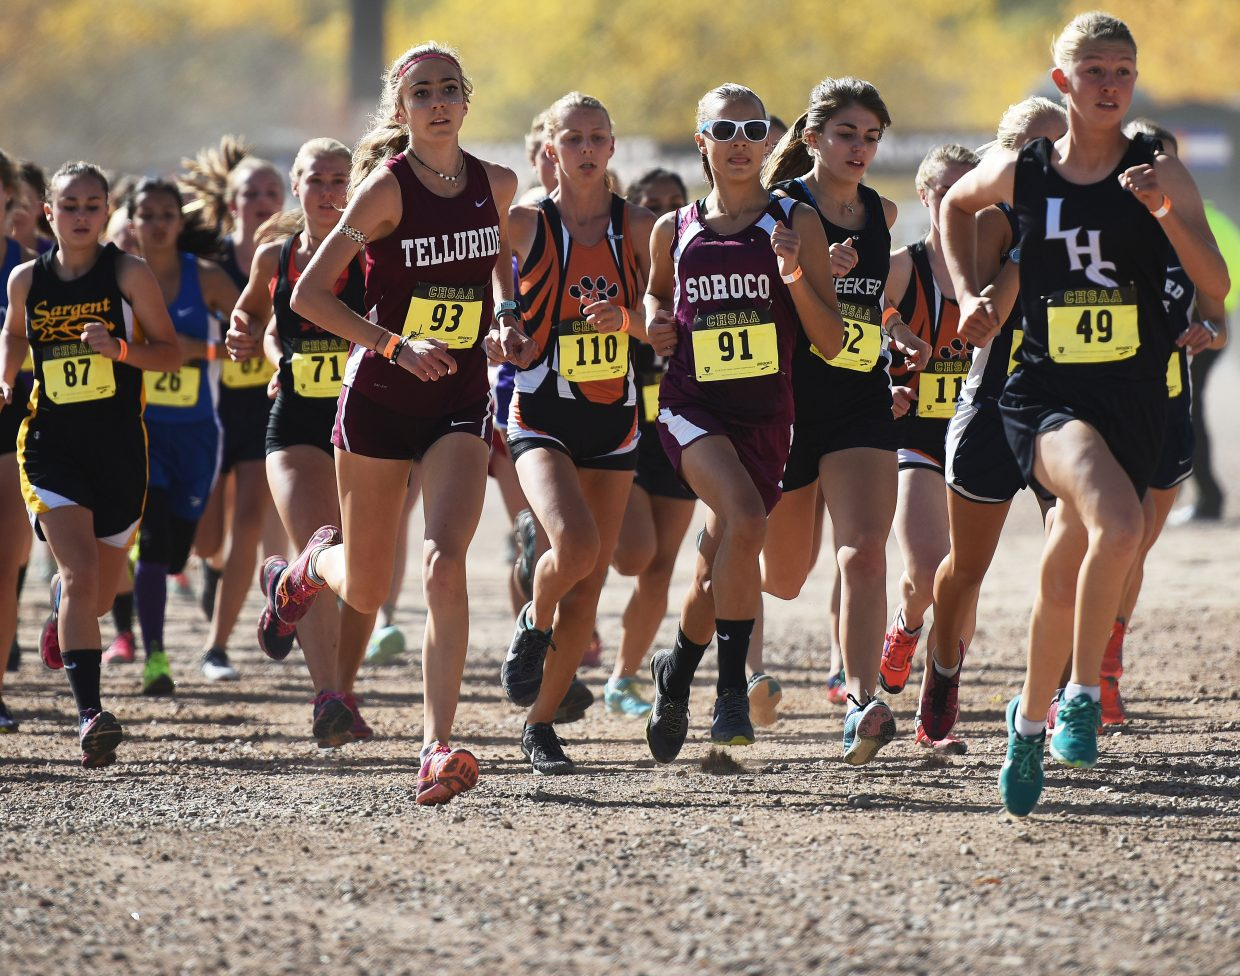 Chloe Veilleux runs at the front of the pack near the start of Saturday's Class 2A state championship cross country race.